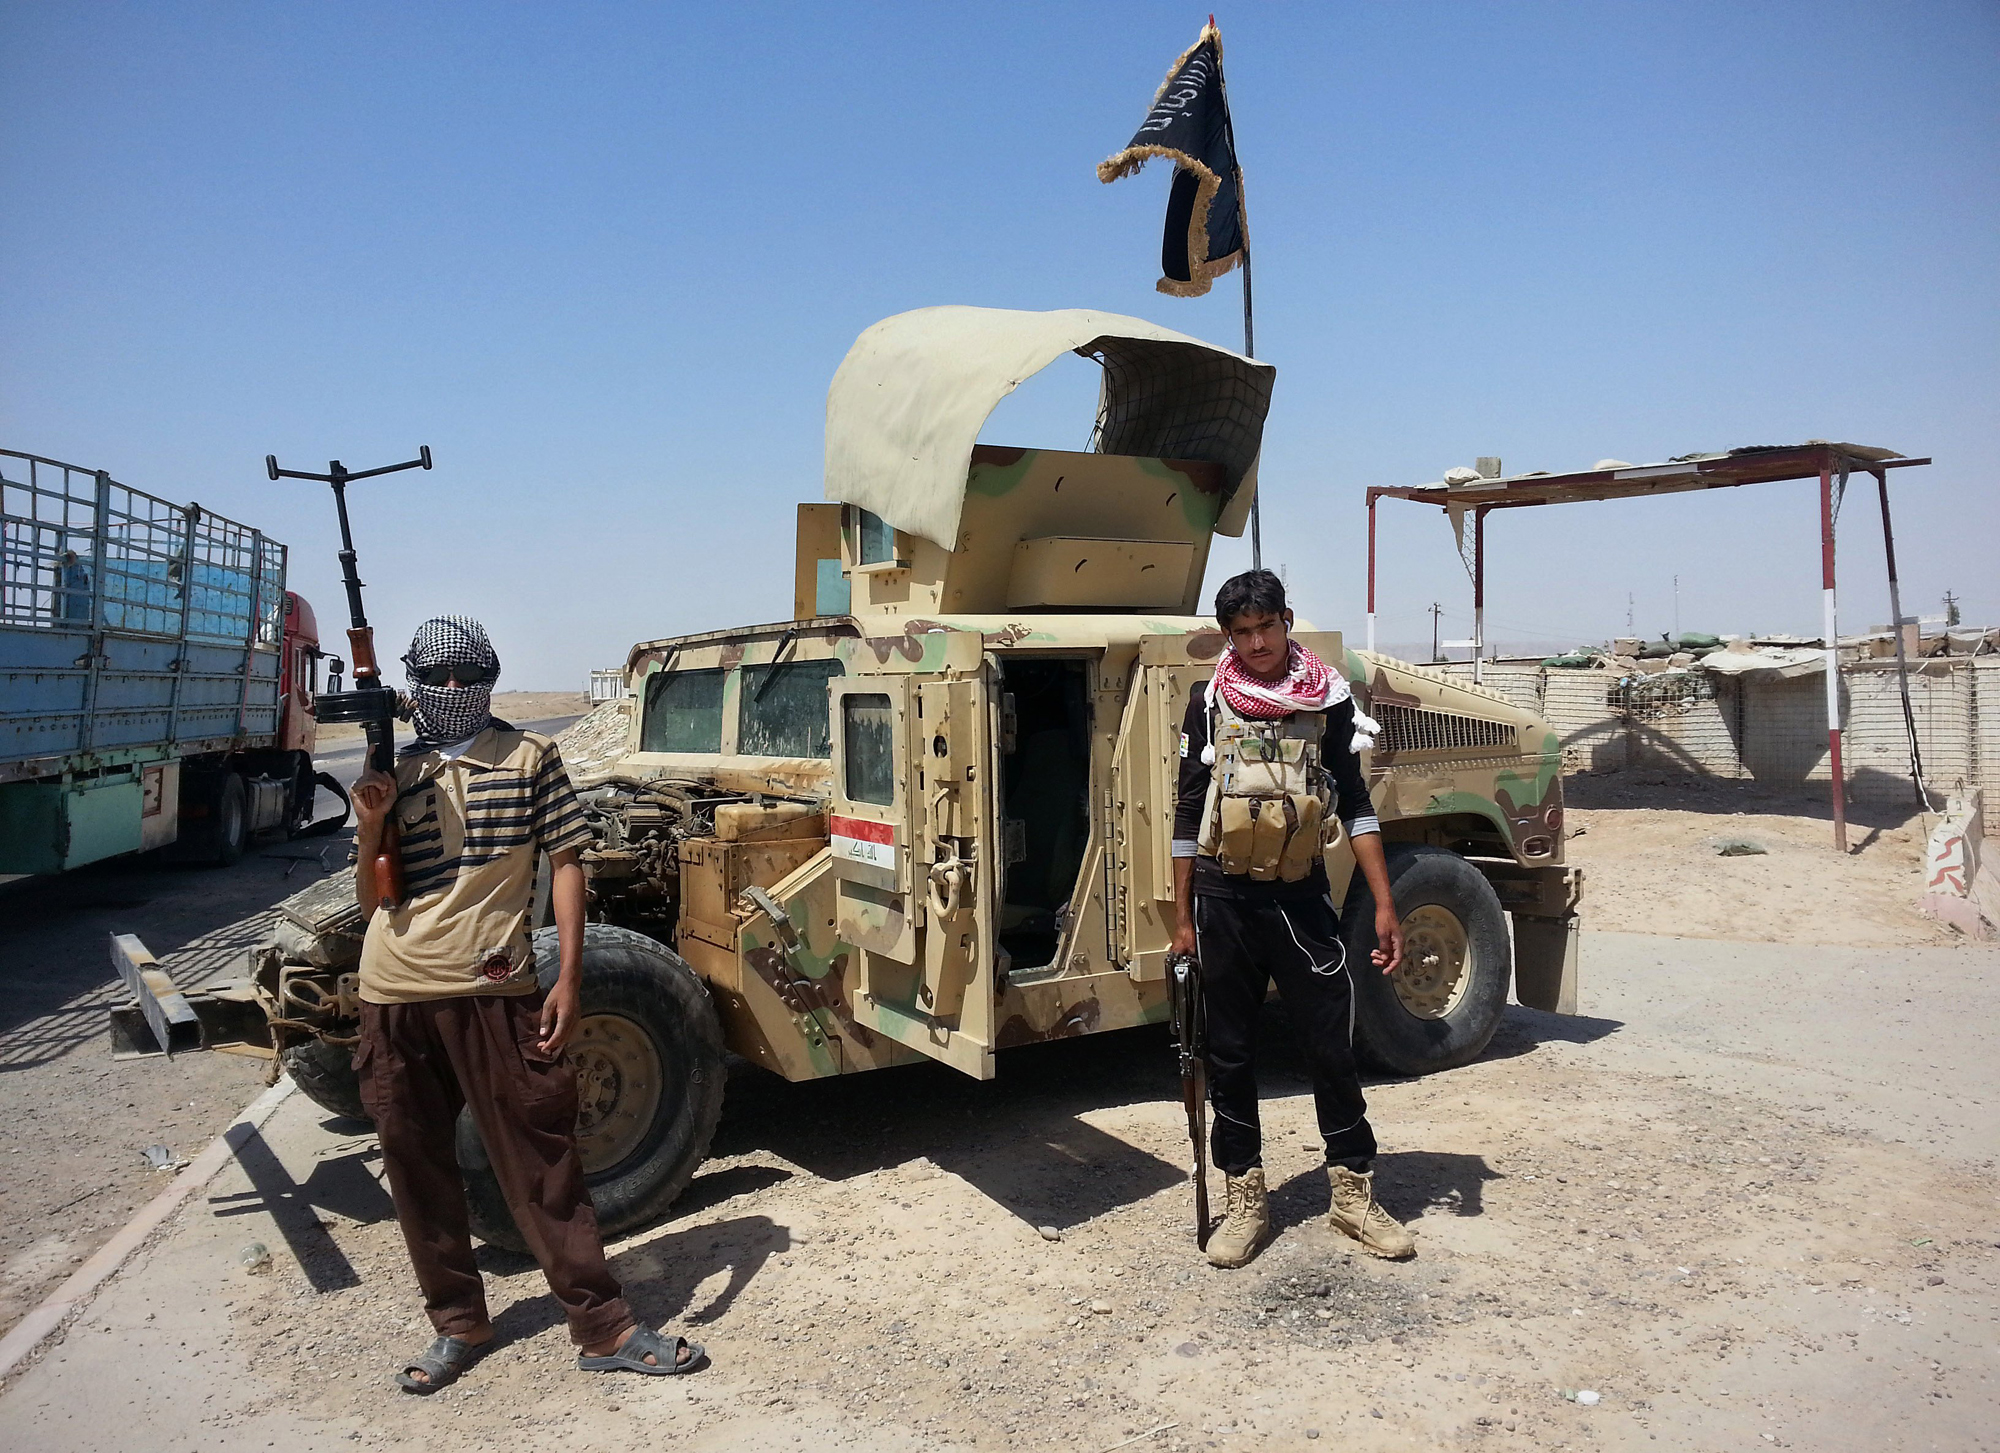 Al-Qaeda inspired militants stand with captured Iraqi Army Humvee at a checkpoint belonging to Iraqi Army outside Beiji refinery some 155 miles north of Baghdad, June 19, 2014.